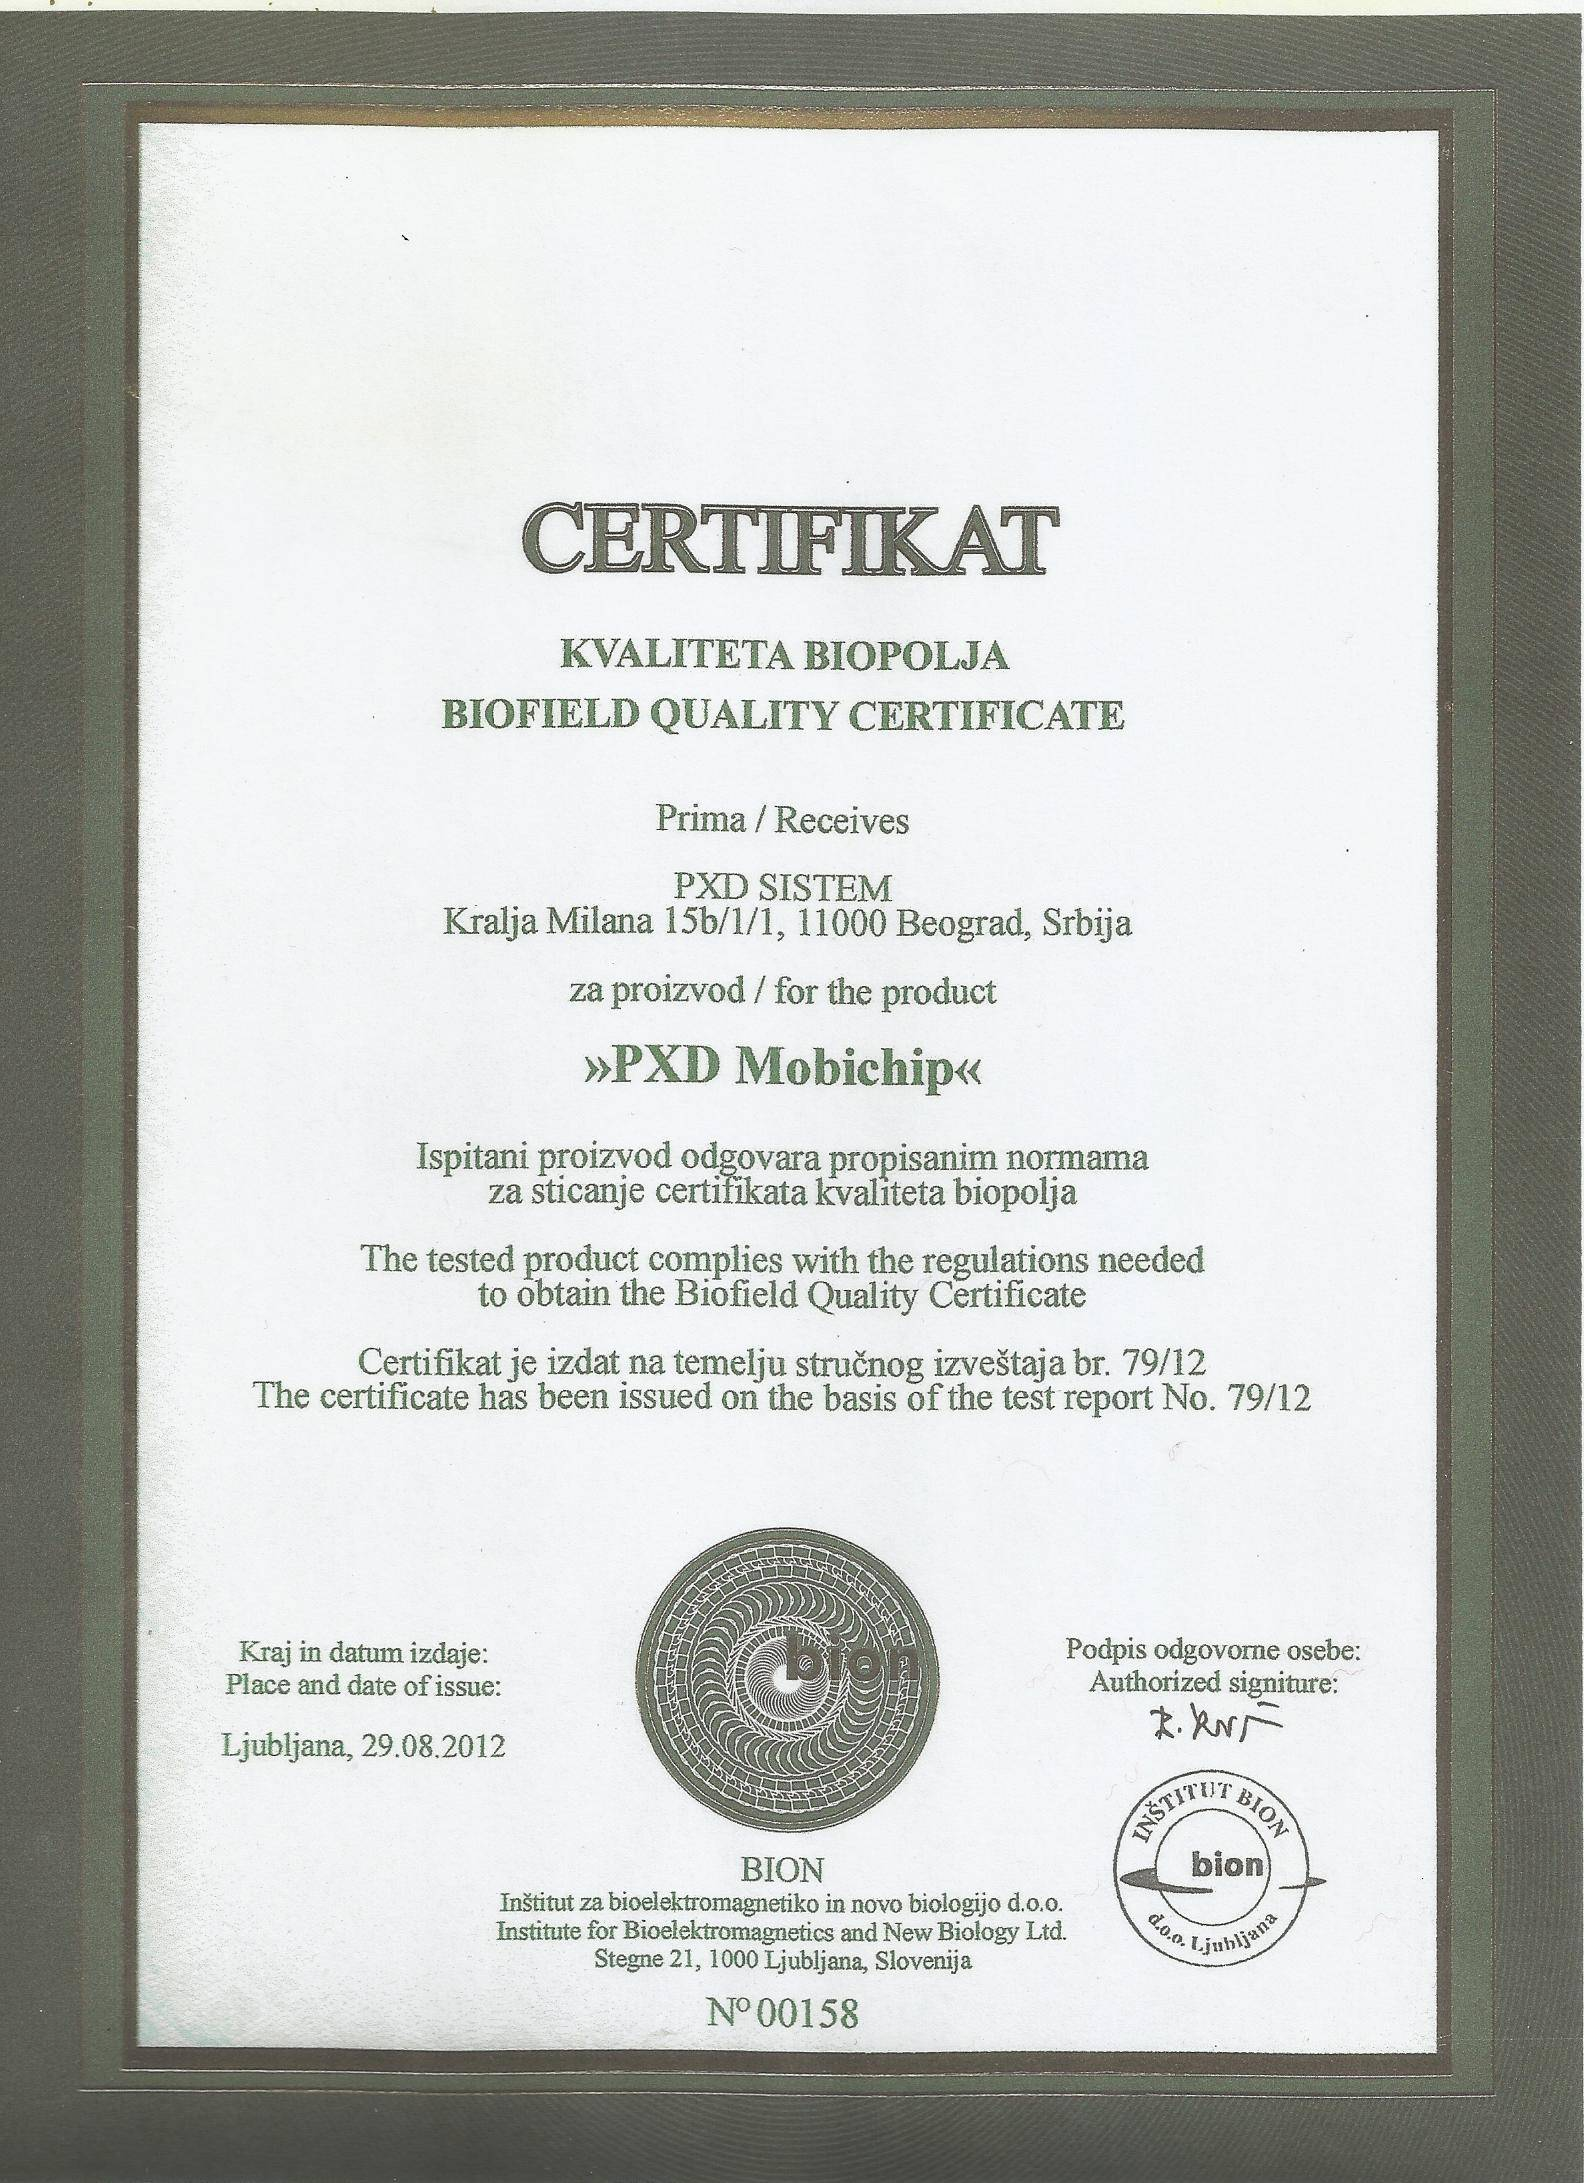 BChip quality certification from Bion Institute for Bioelektromagnetics and New Biology